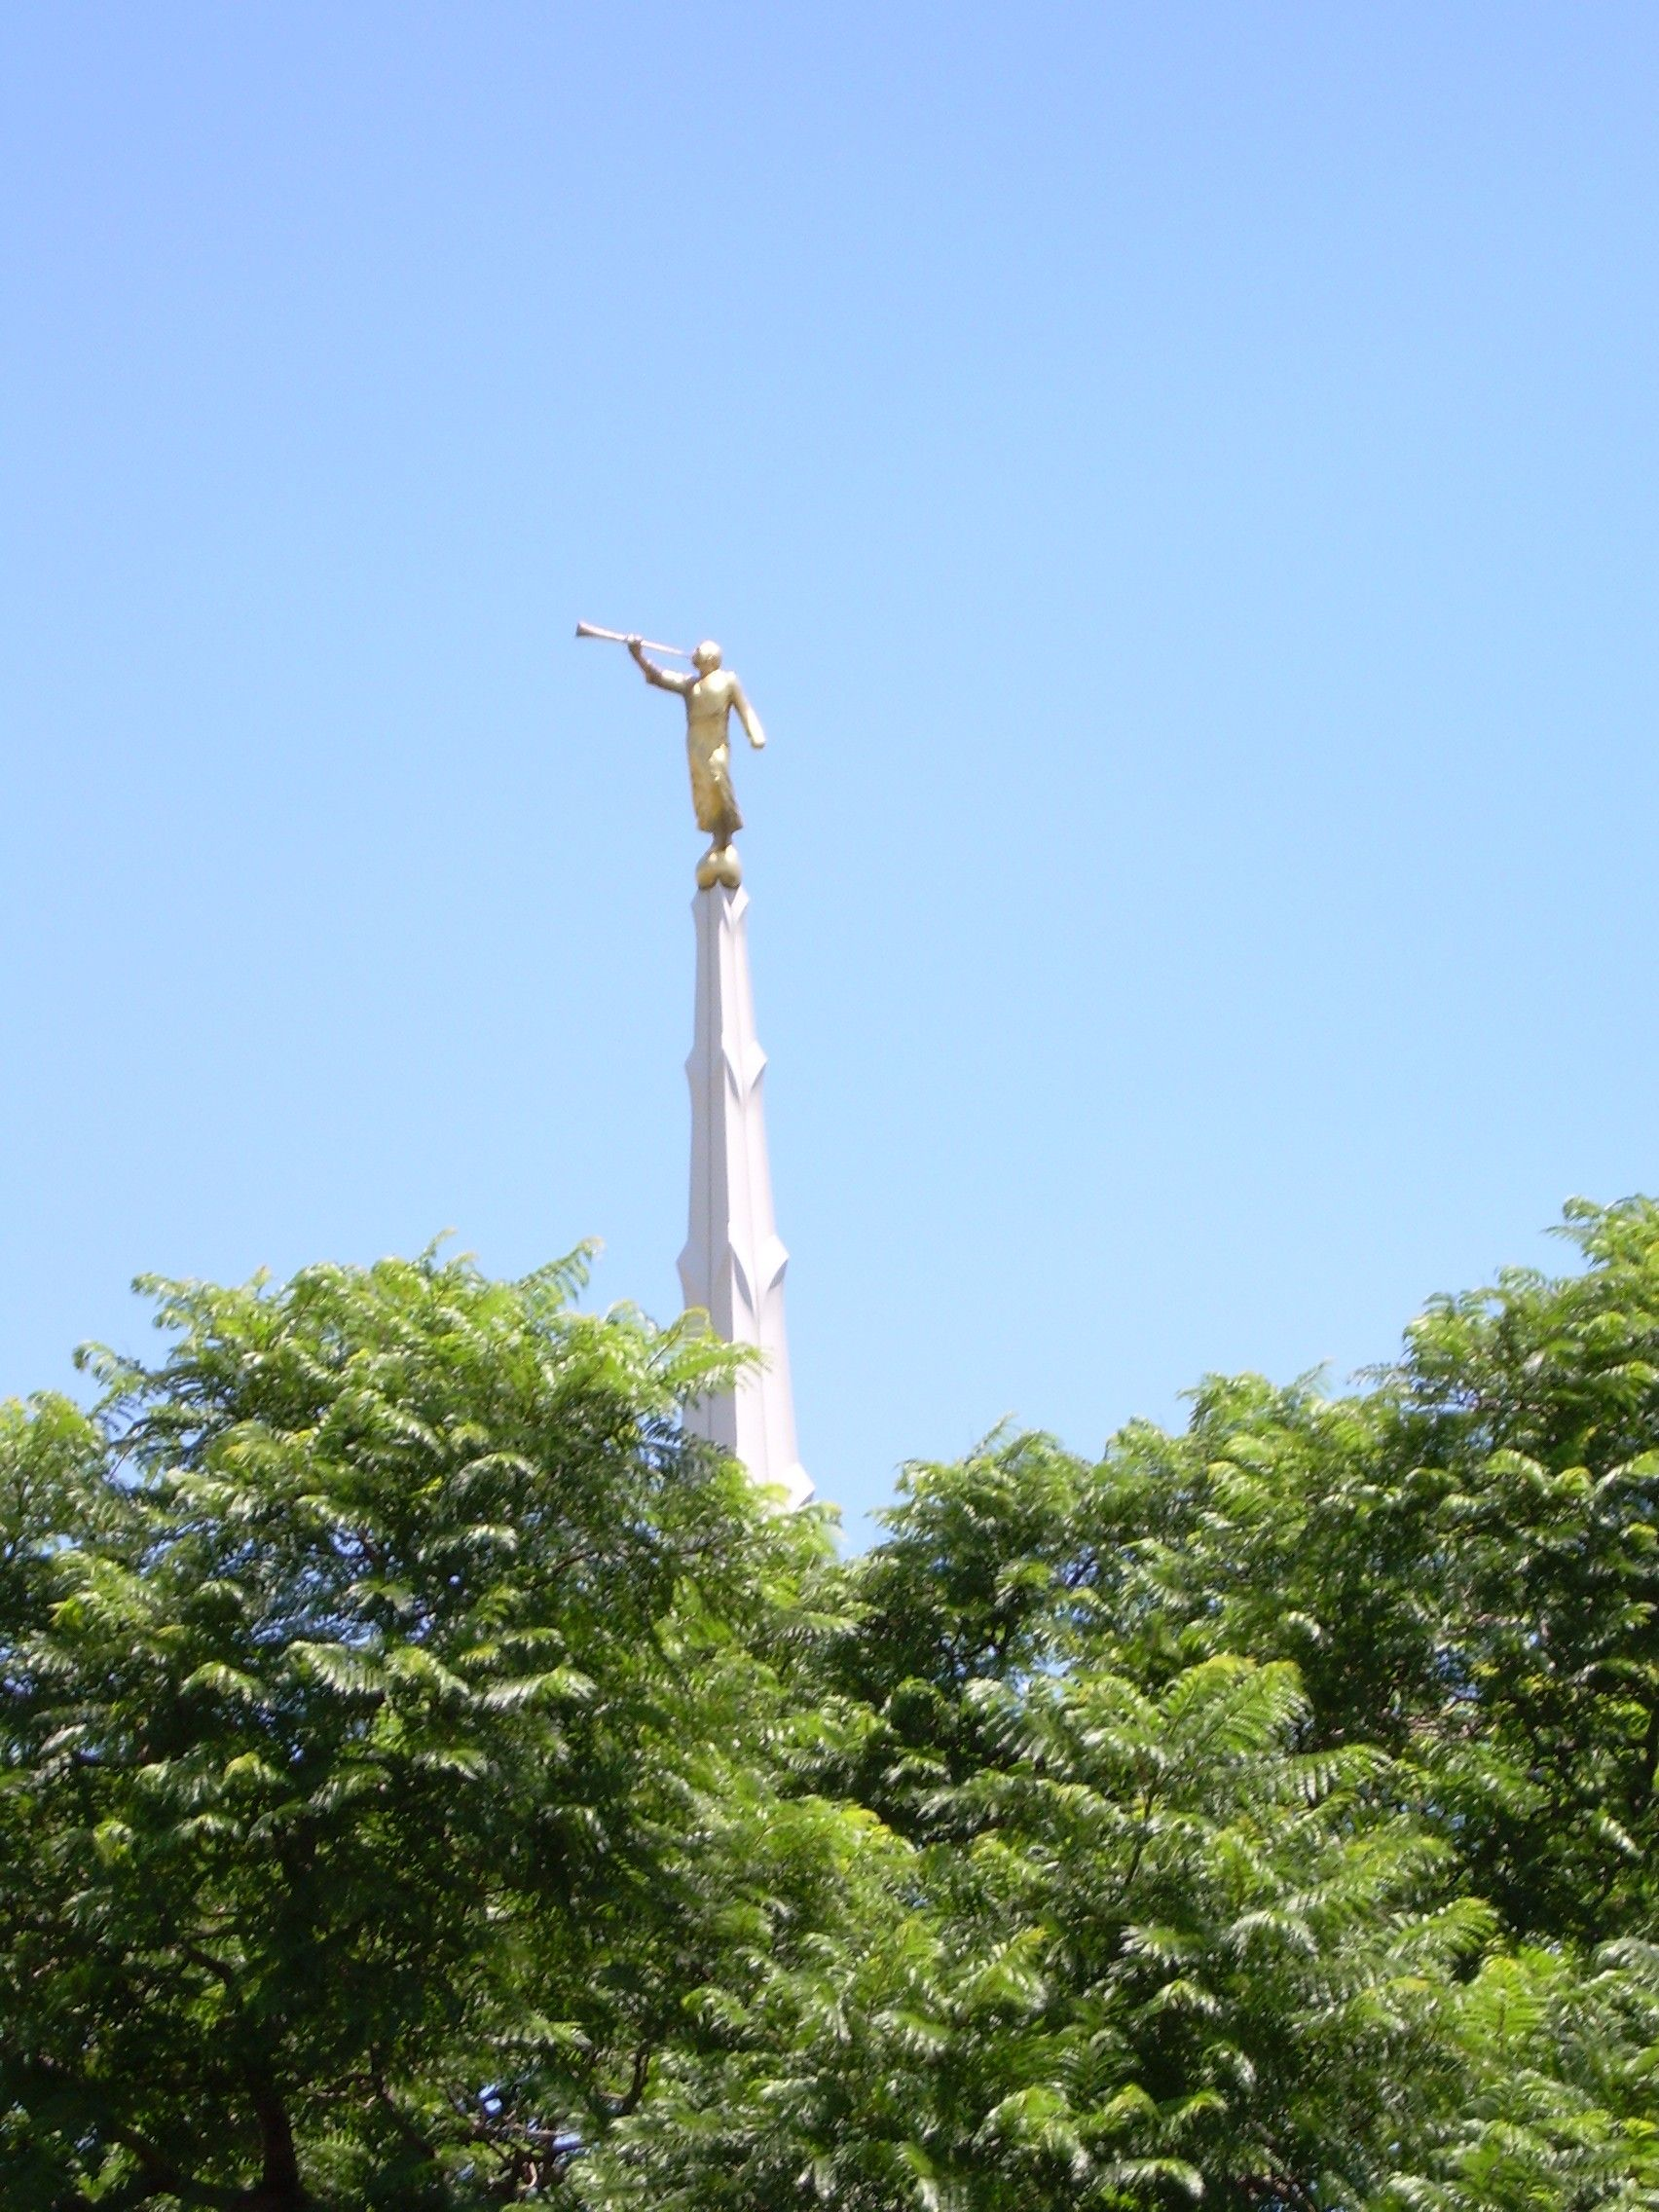 The Johannesburg South Africa Temple spire, including trees.